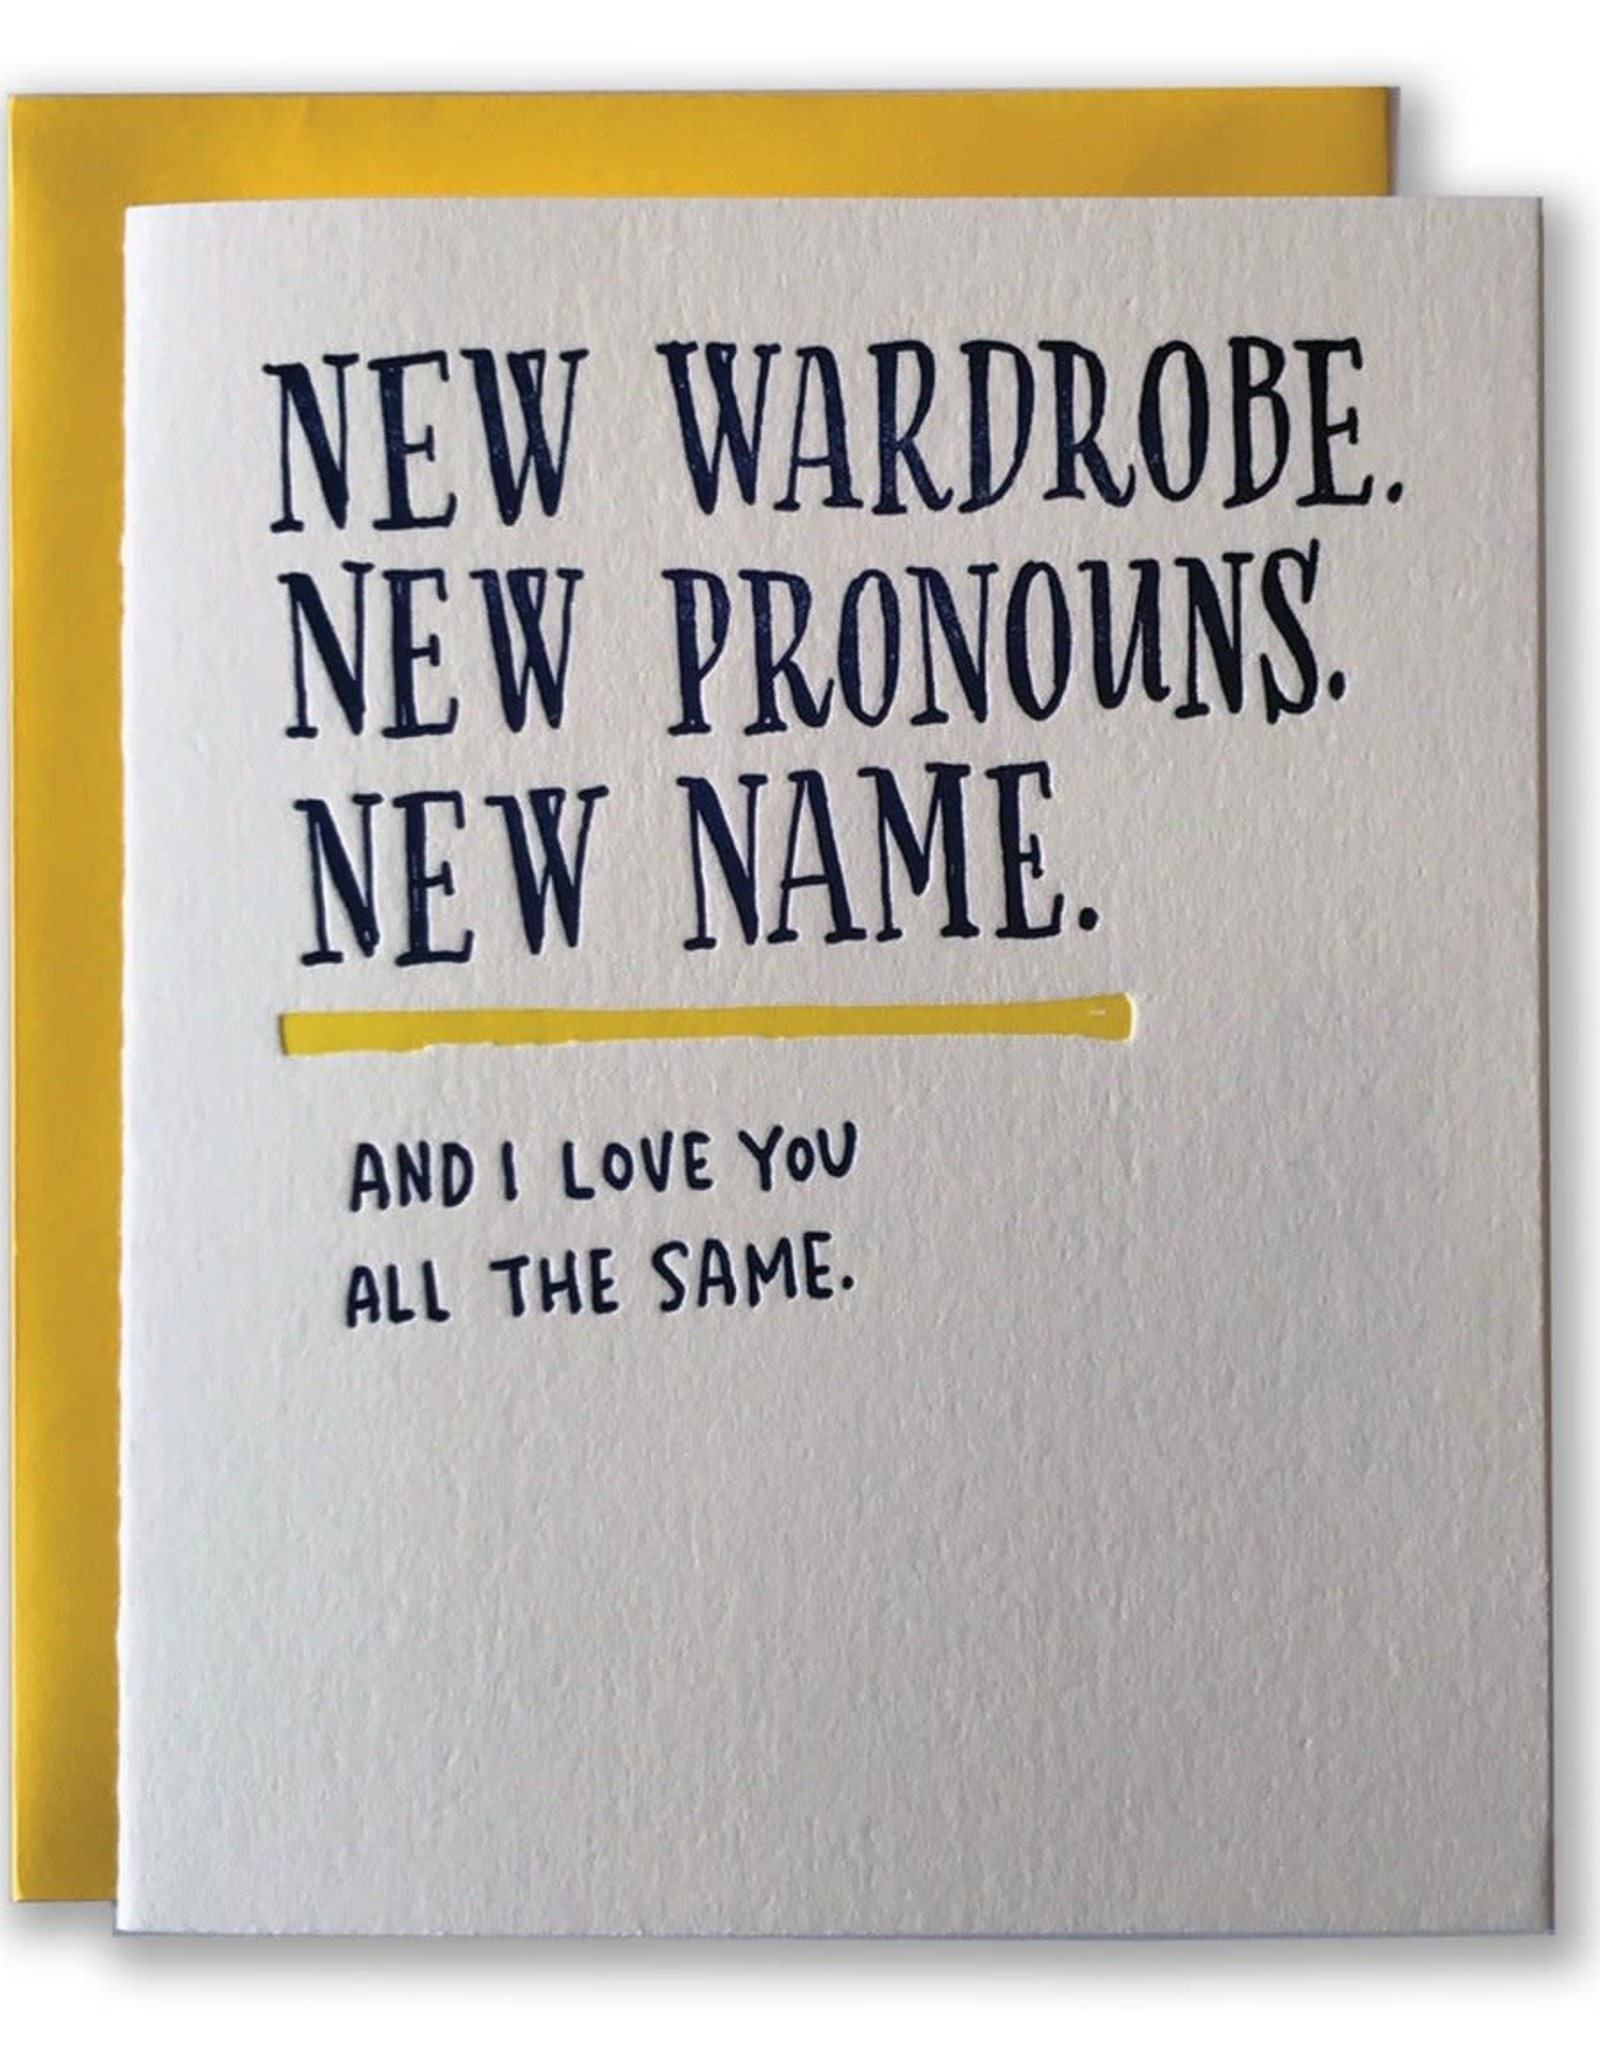 New Wardrobe, Pronouns, Name Greeting Card